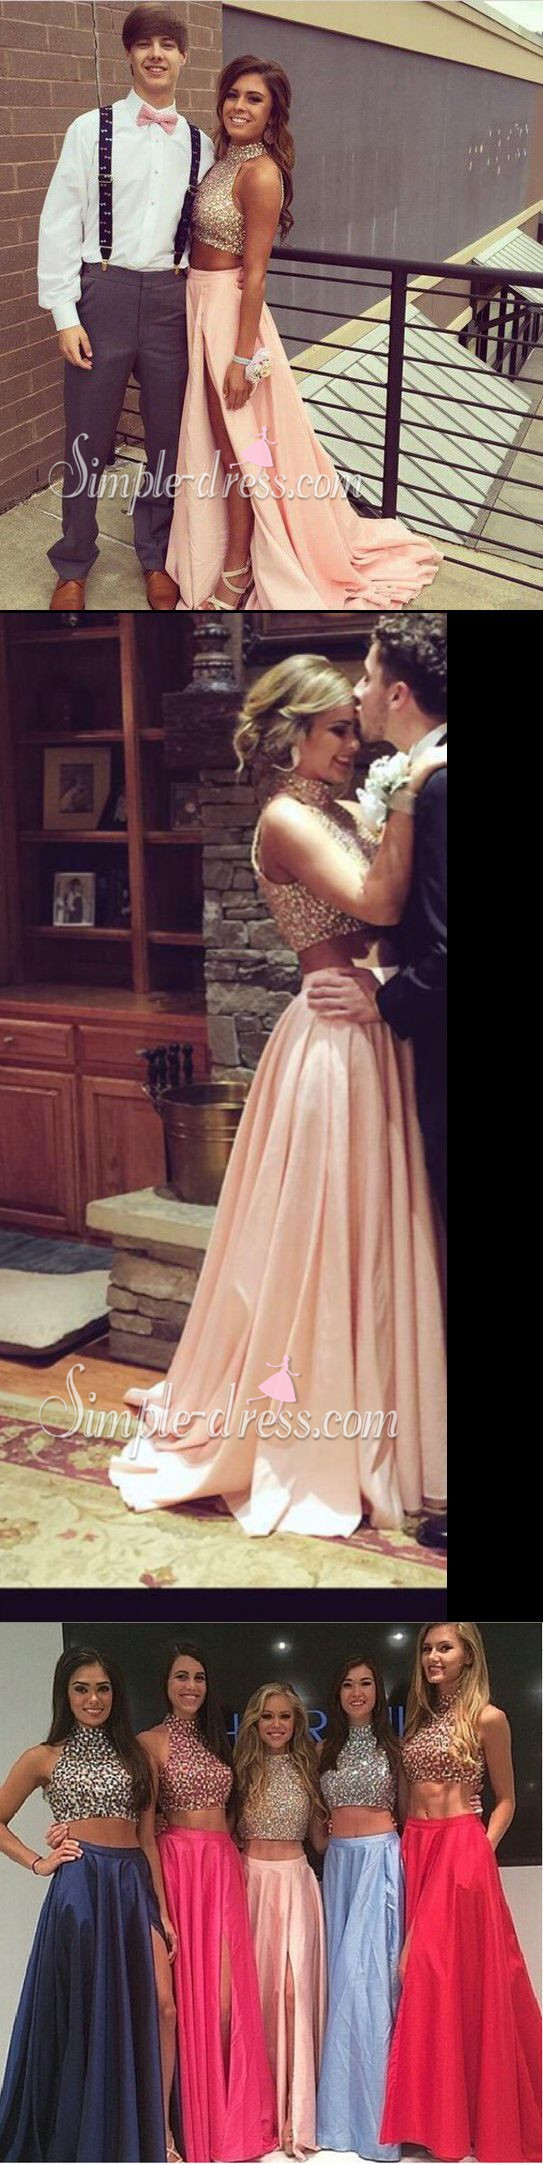 8f41dc37986 New Arrival High Neck Satin Backless Two Piece Prom Dress with ...